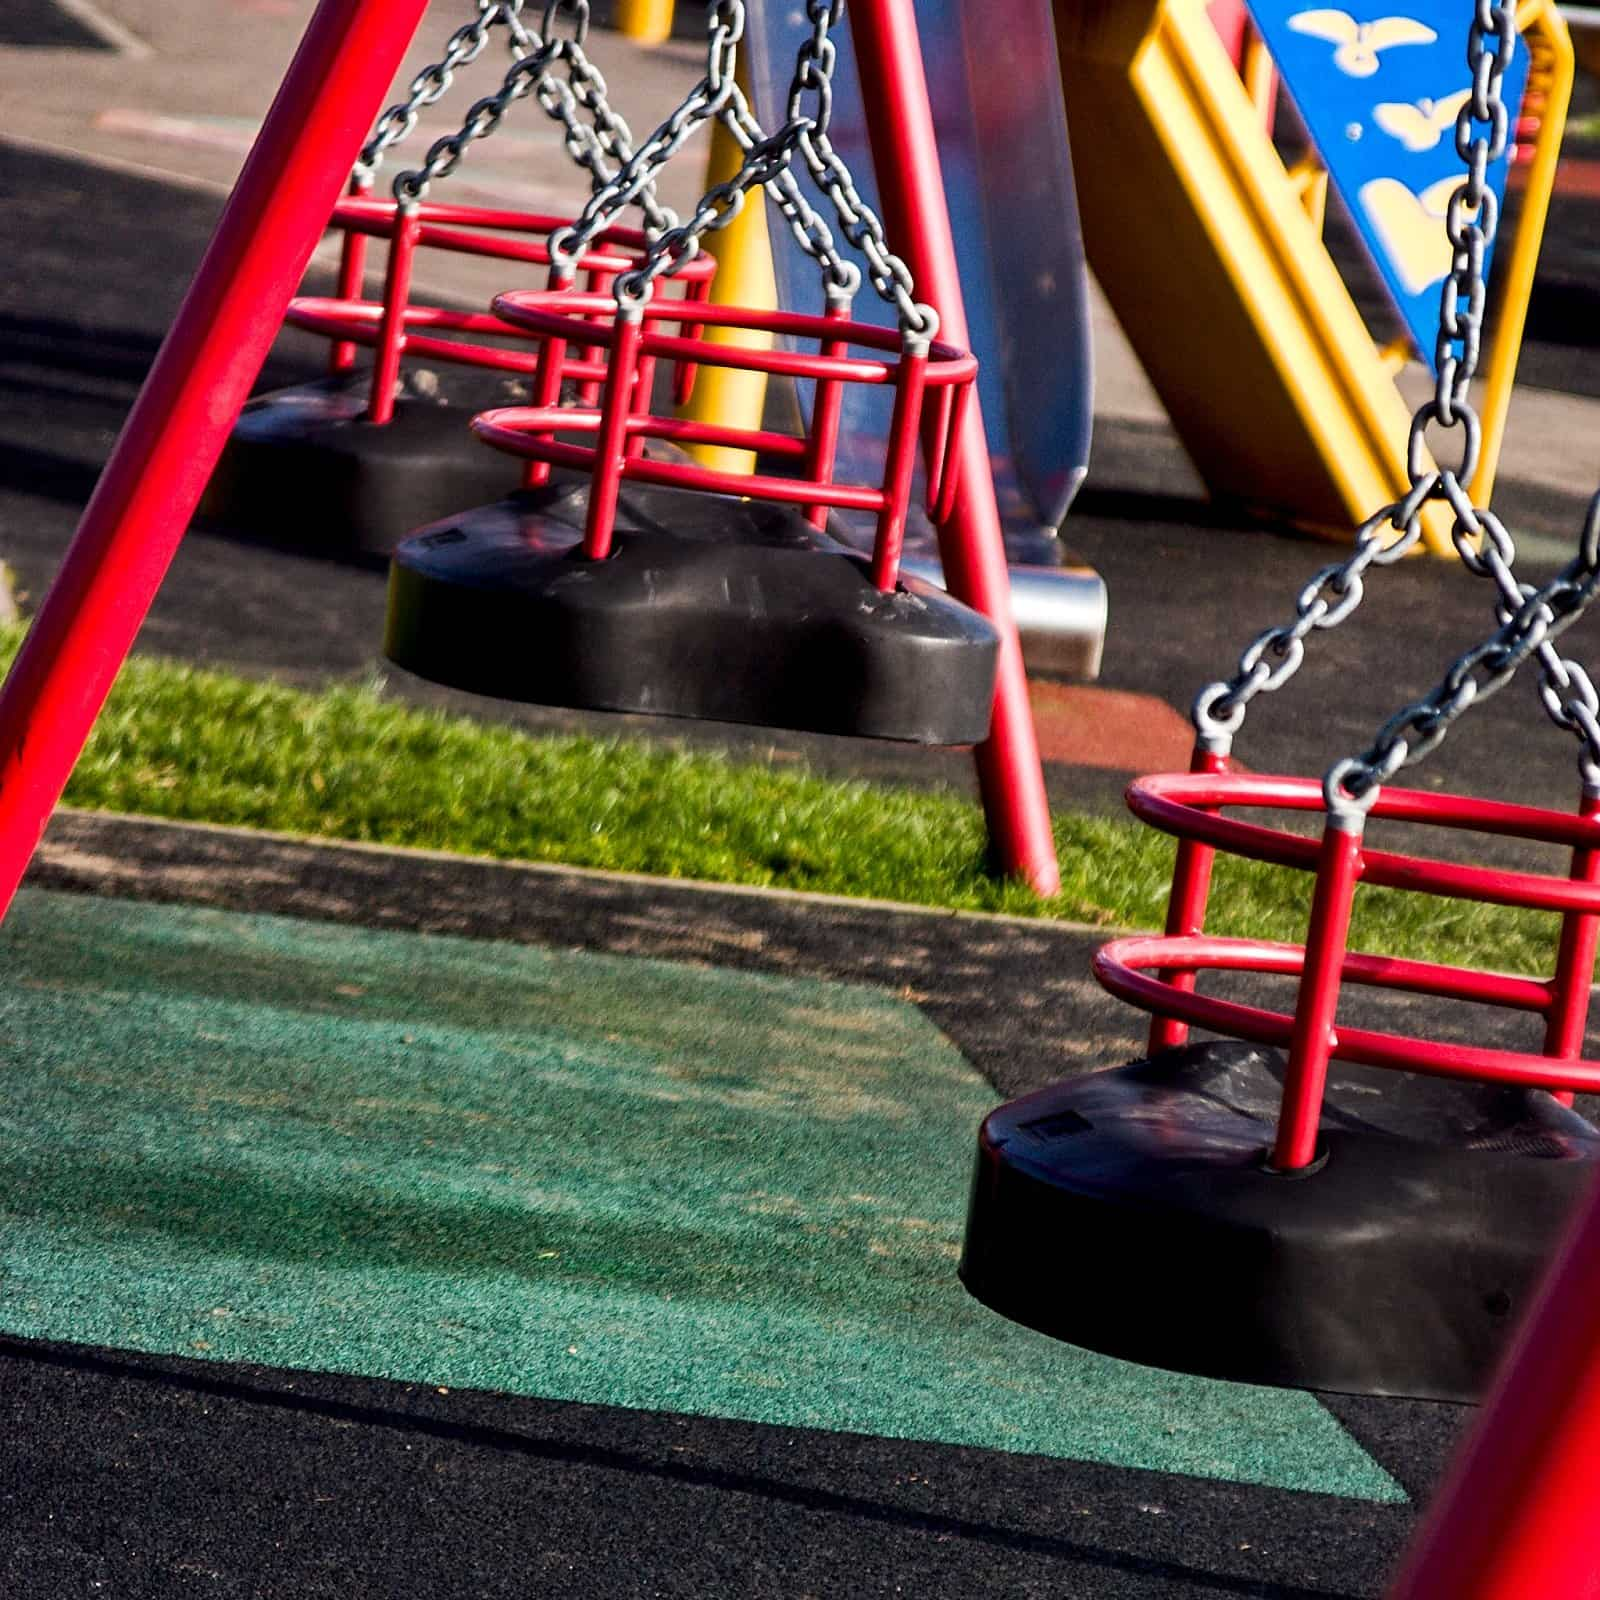 Swings and a slide in a children's playground